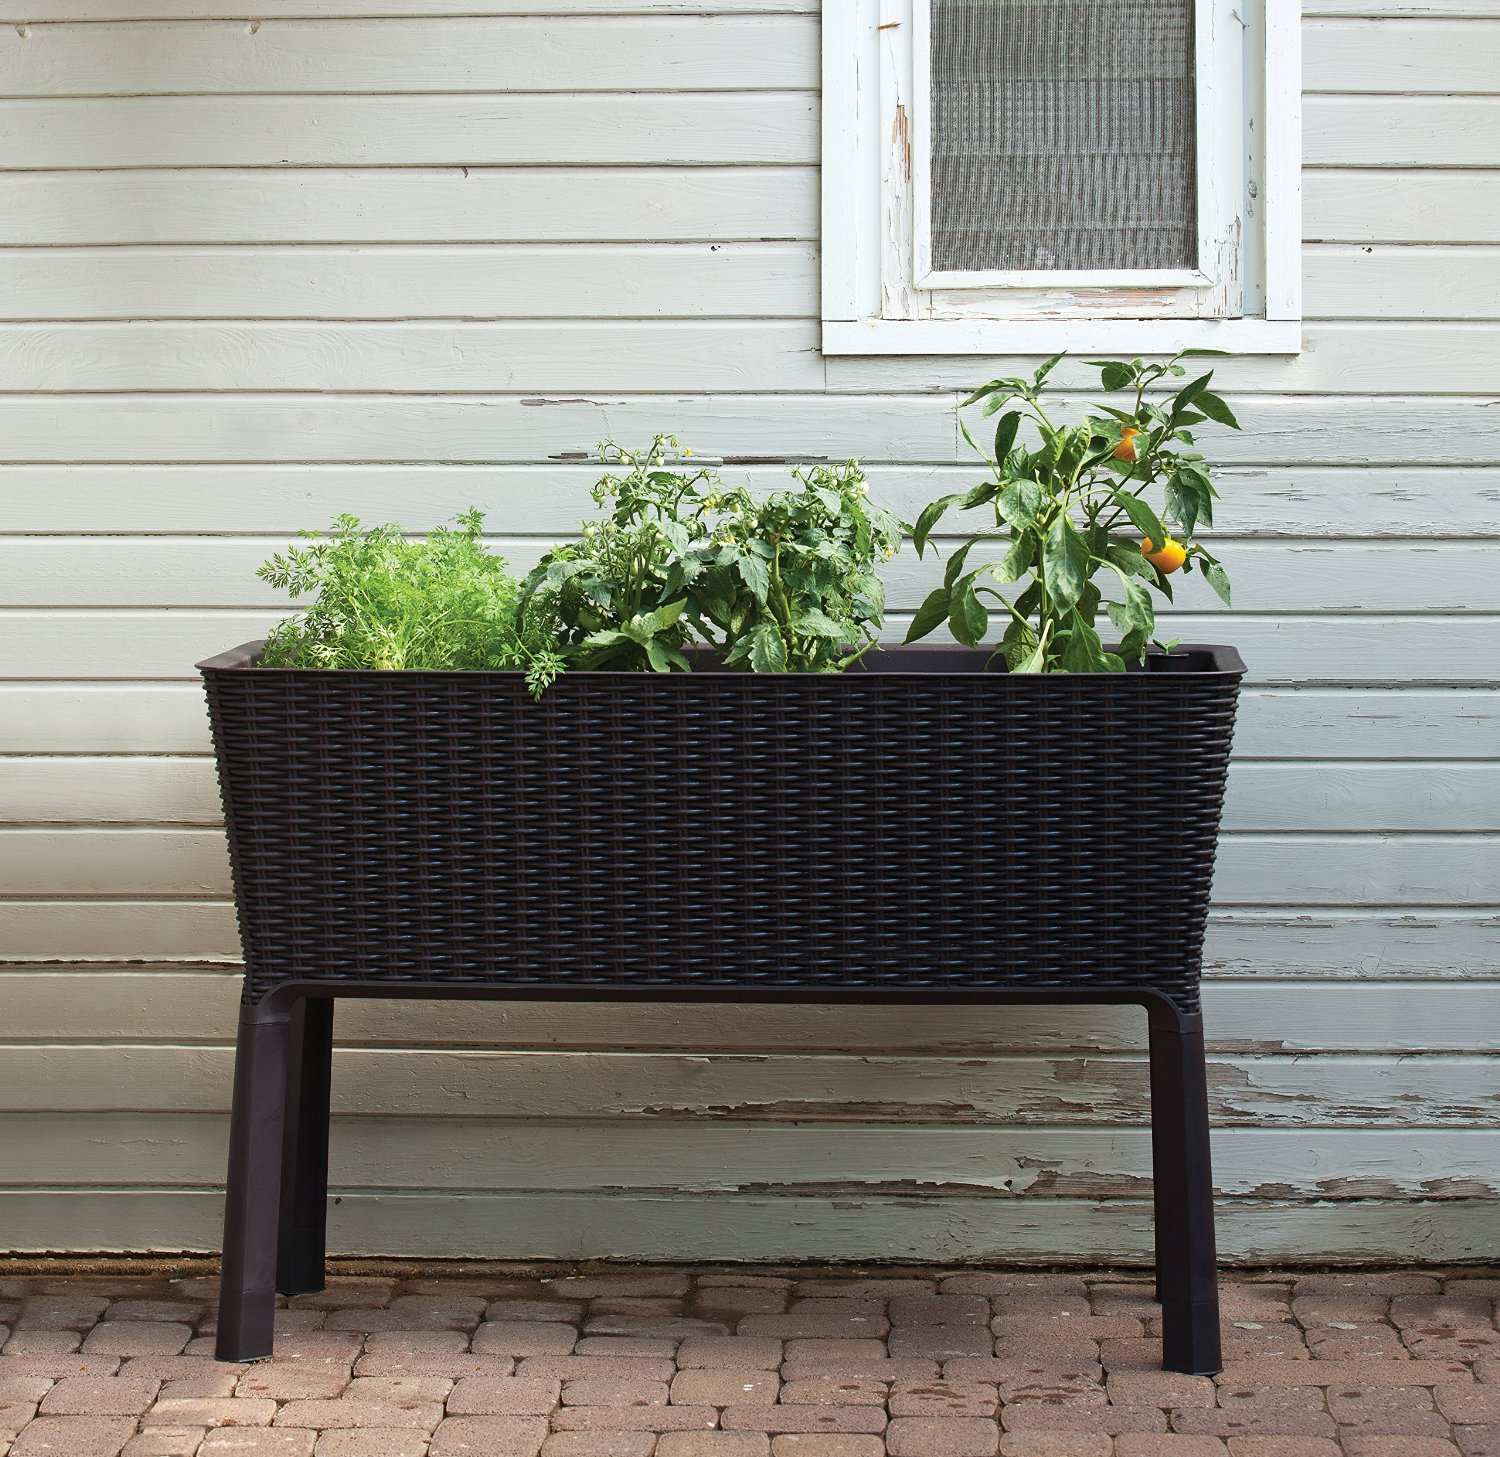 Creative Raised Garden Bed Kits That You Can Easily